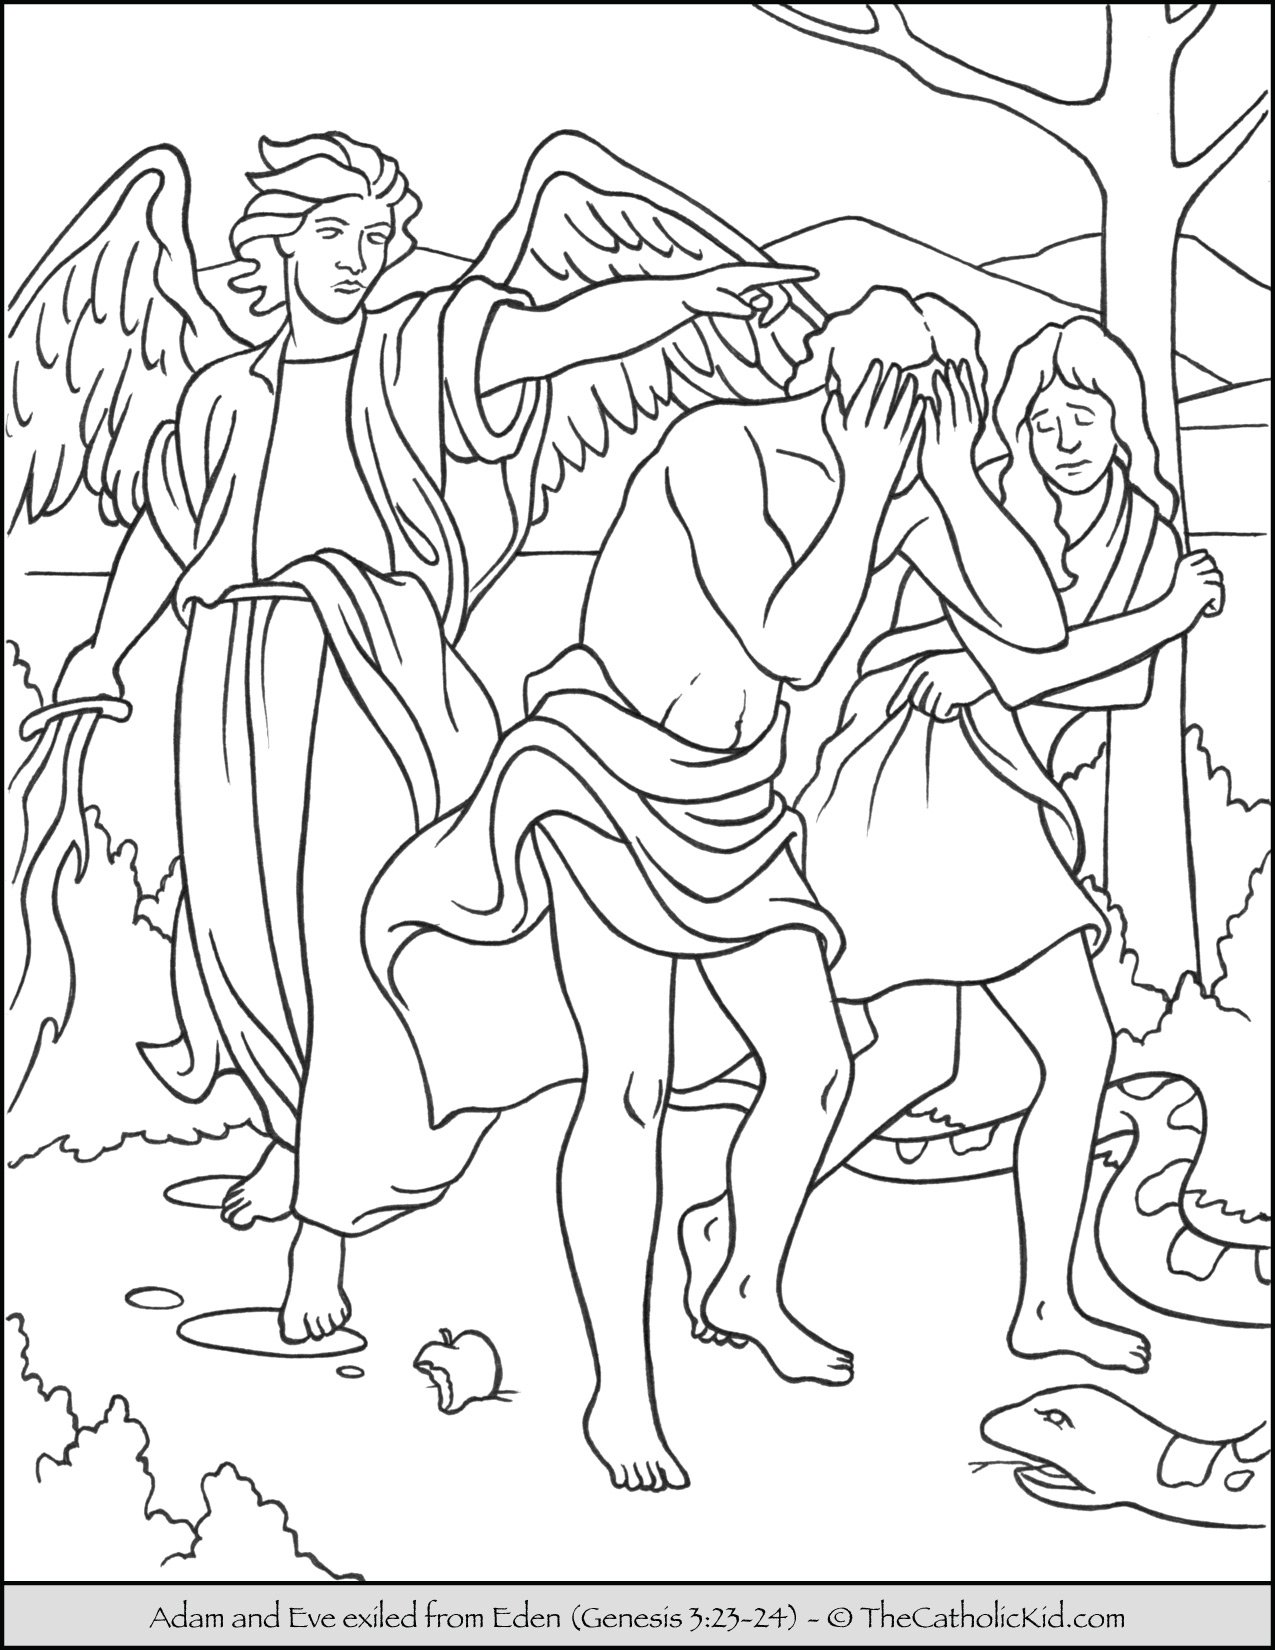 Bible Coloring Page - Adam and Eve Exiled from Eden